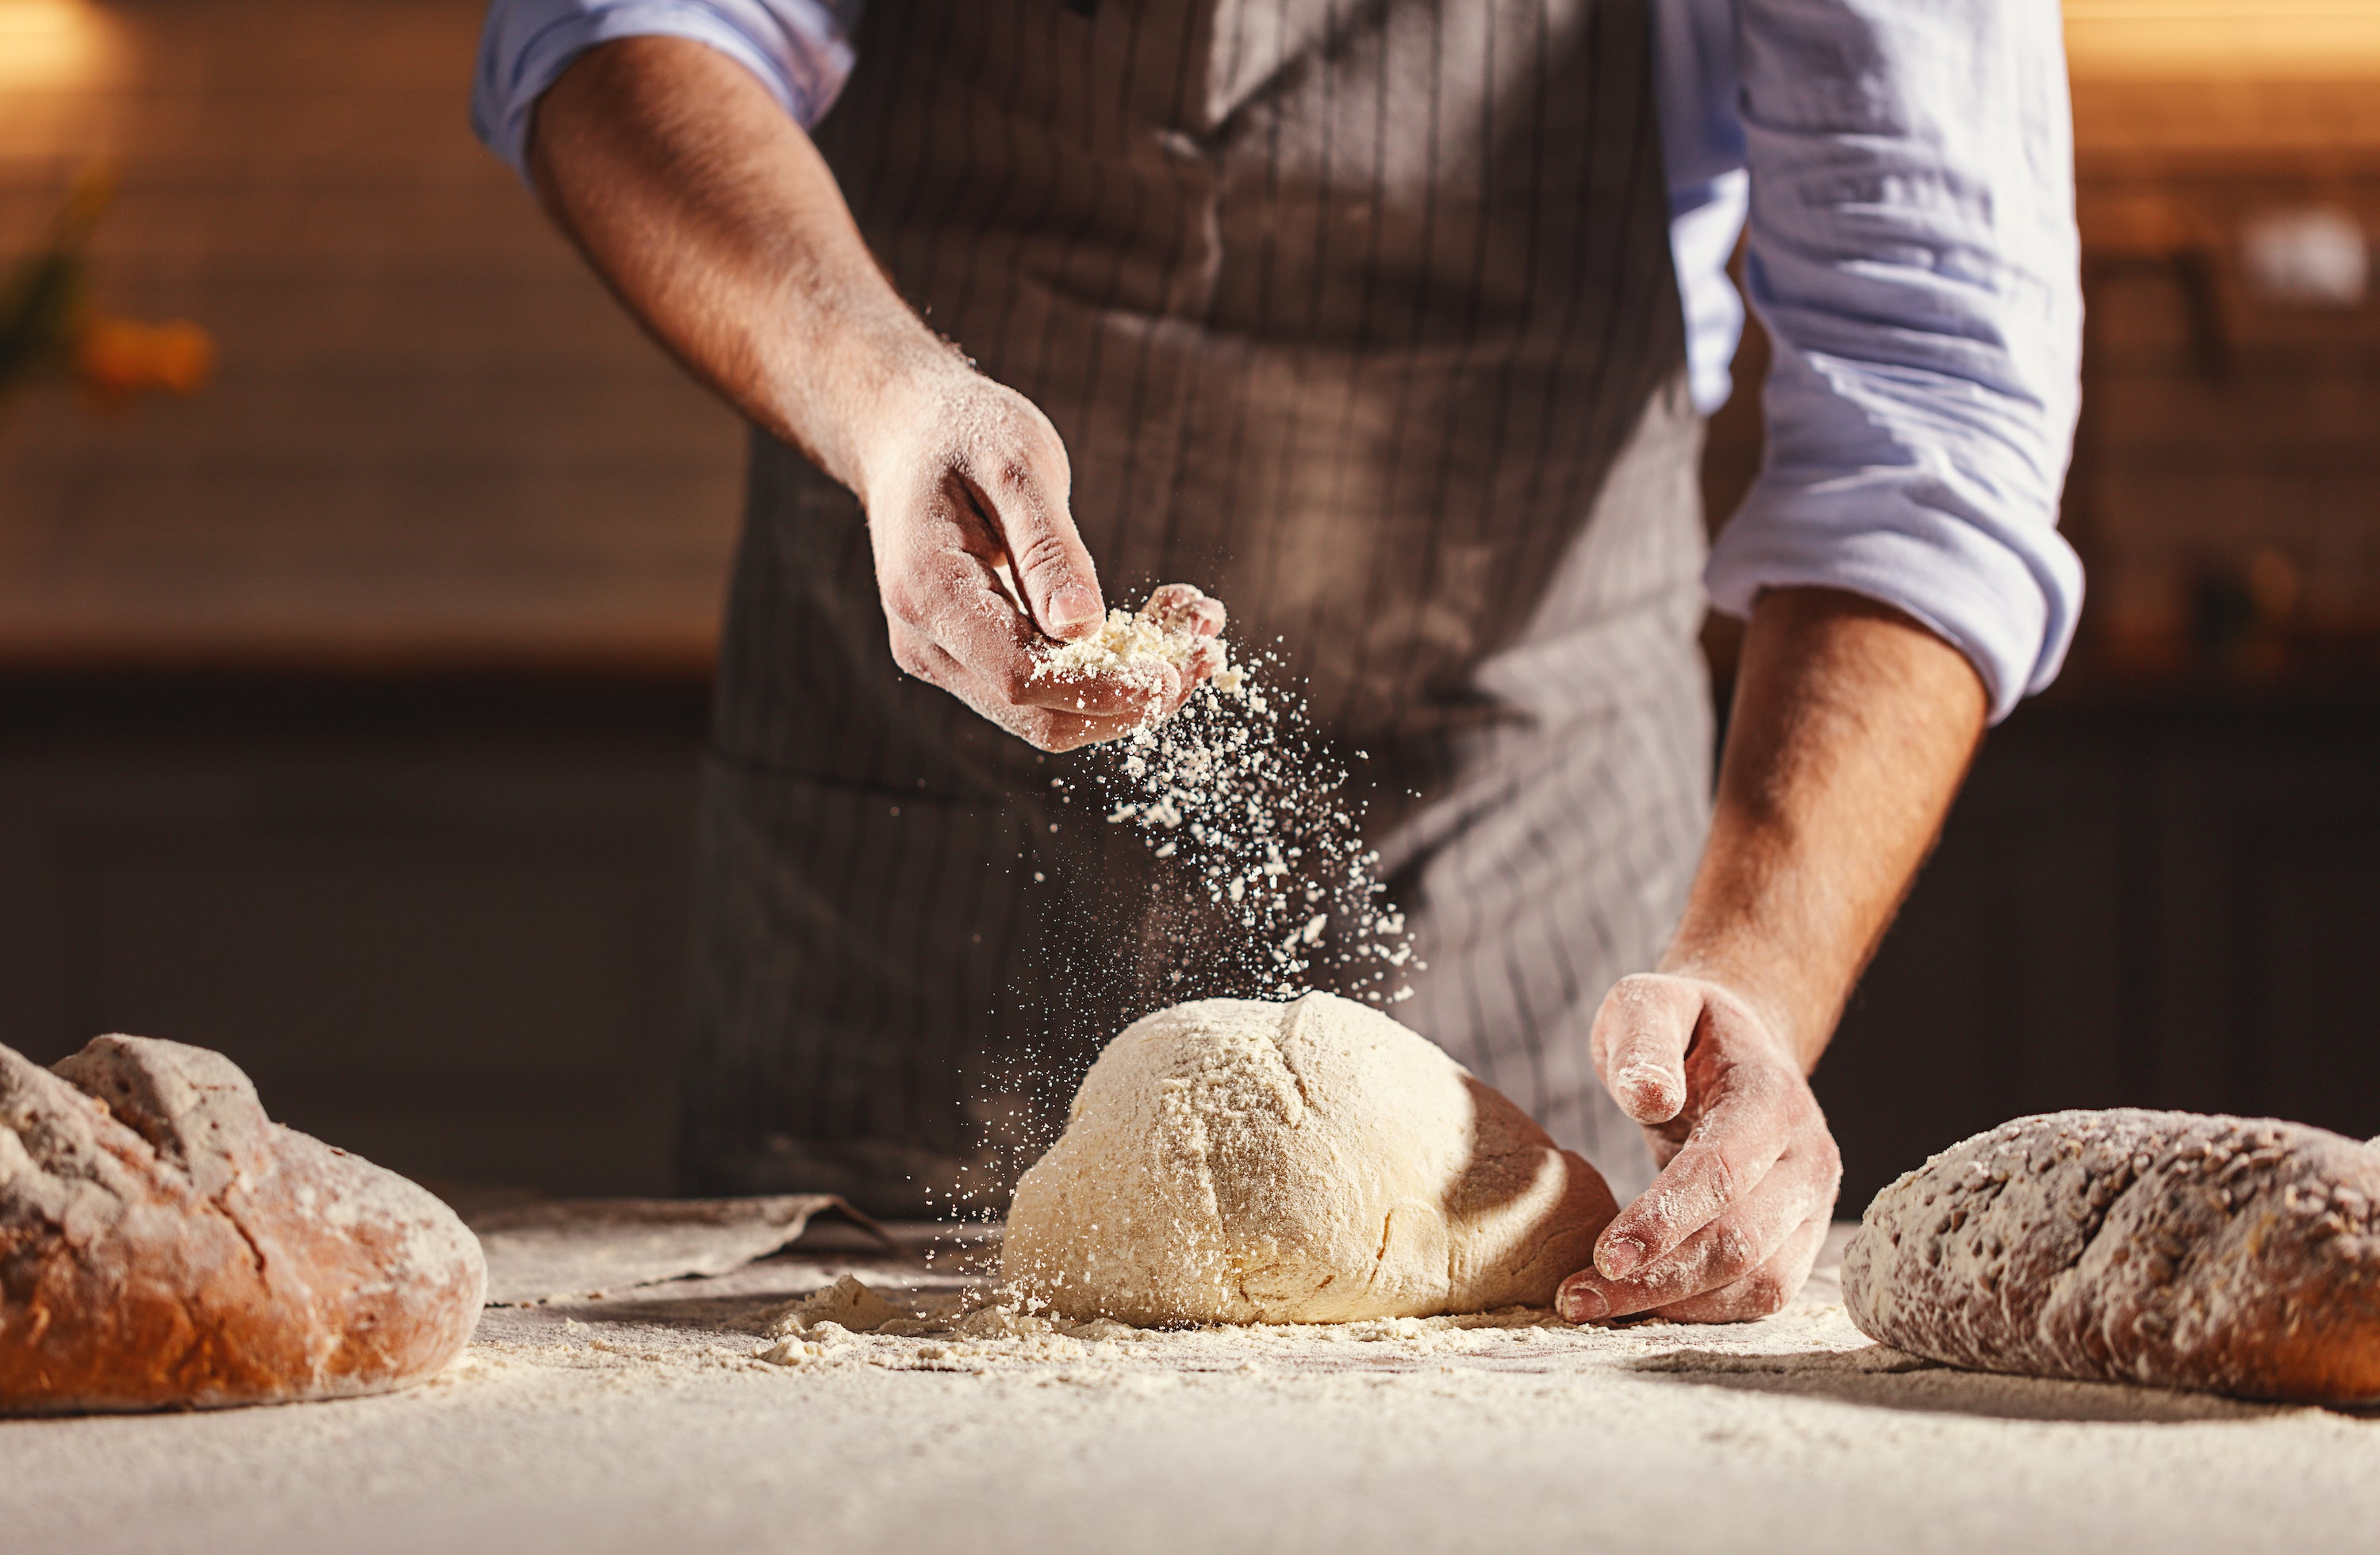 man sprinkling flour on lump of dough on workstation in between two loaves of bread